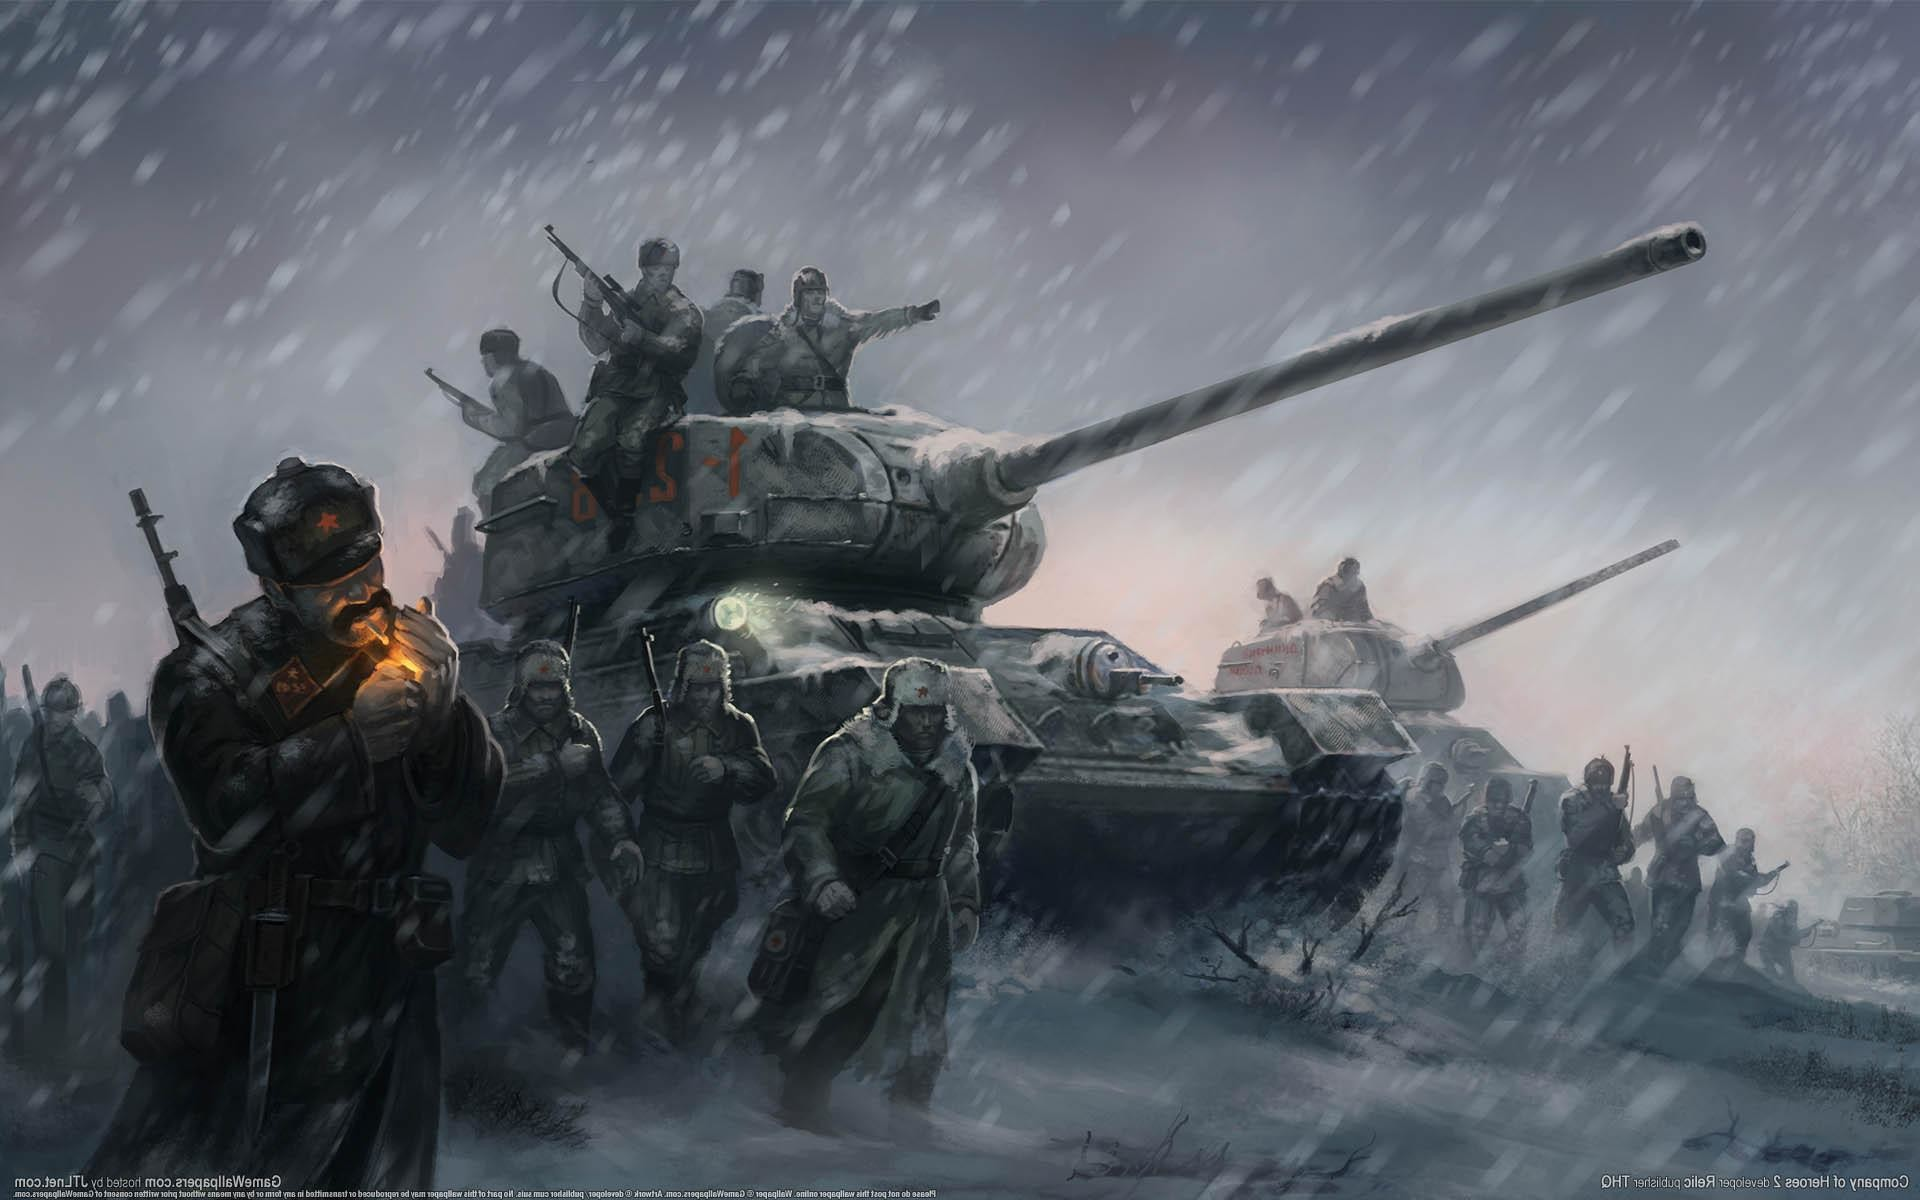 King Tiger Tank Wallpaper 74 Images HD Wallpapers Download Free Images Wallpaper [1000image.com]